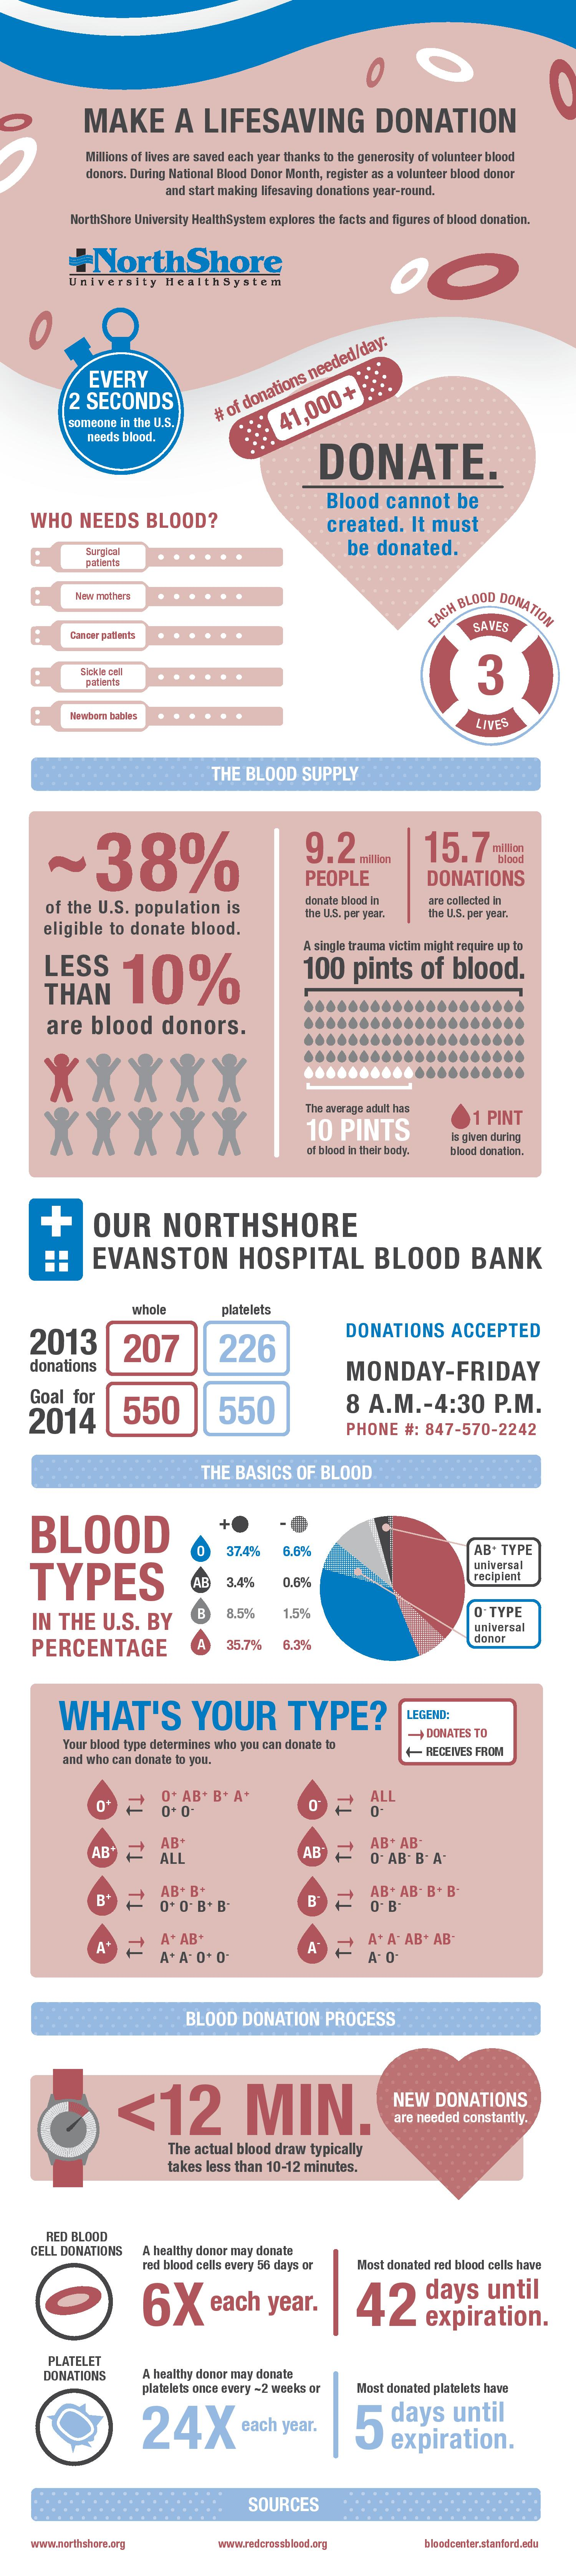 000 January is blood donation month. Many of us don't realize